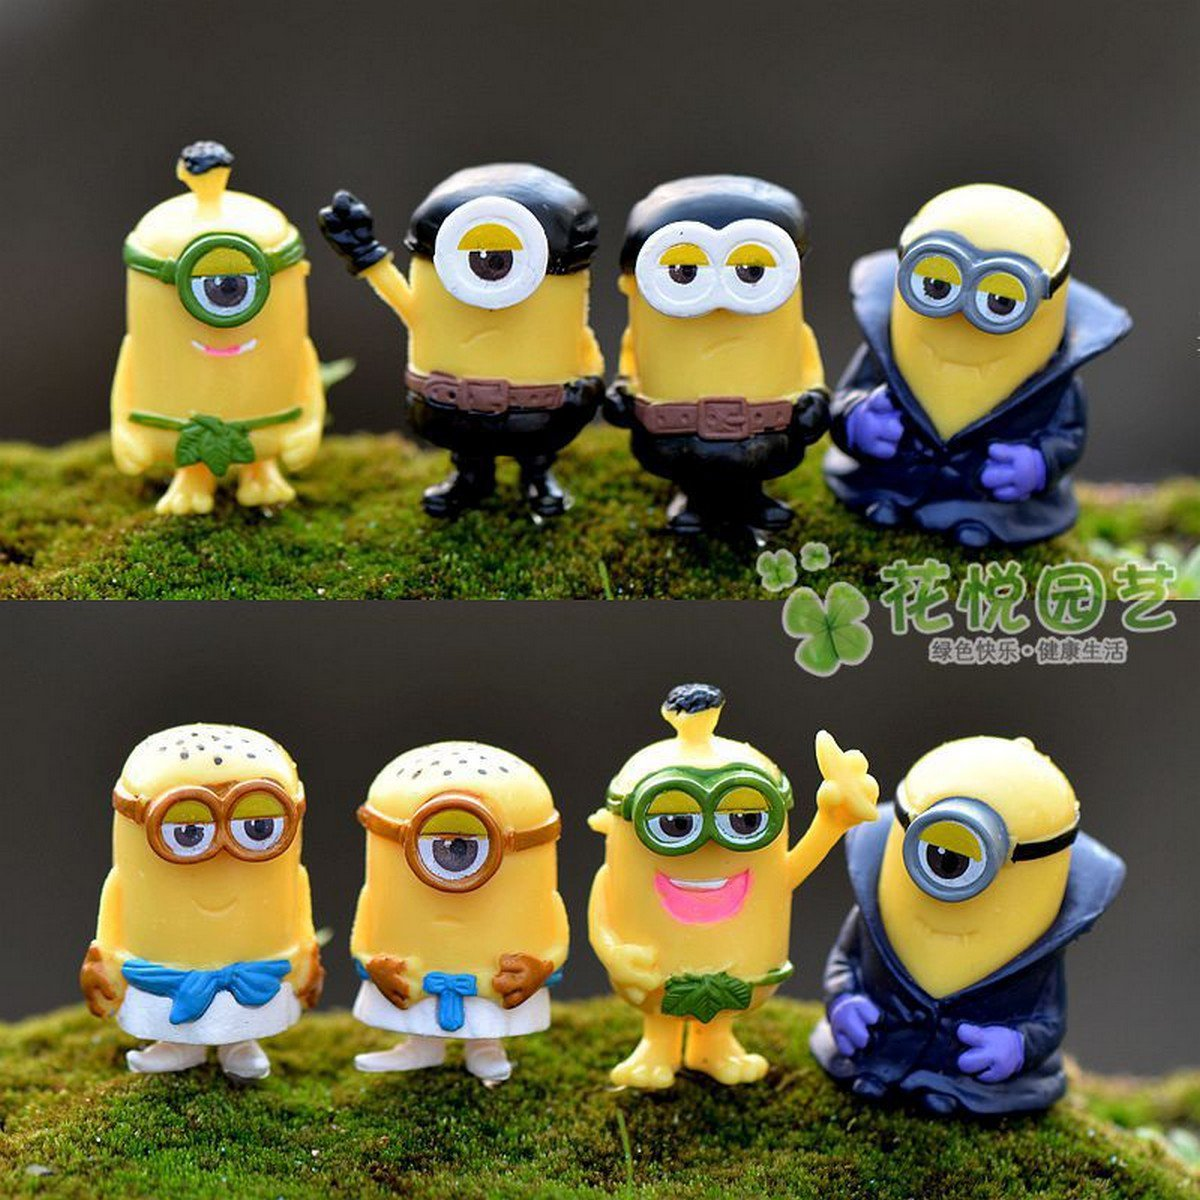 Buy 8Pcslot Fashion Cartoon Despicable Me 2 Minions Decoration Toy 3D Eye Mini Moive Star Figure To